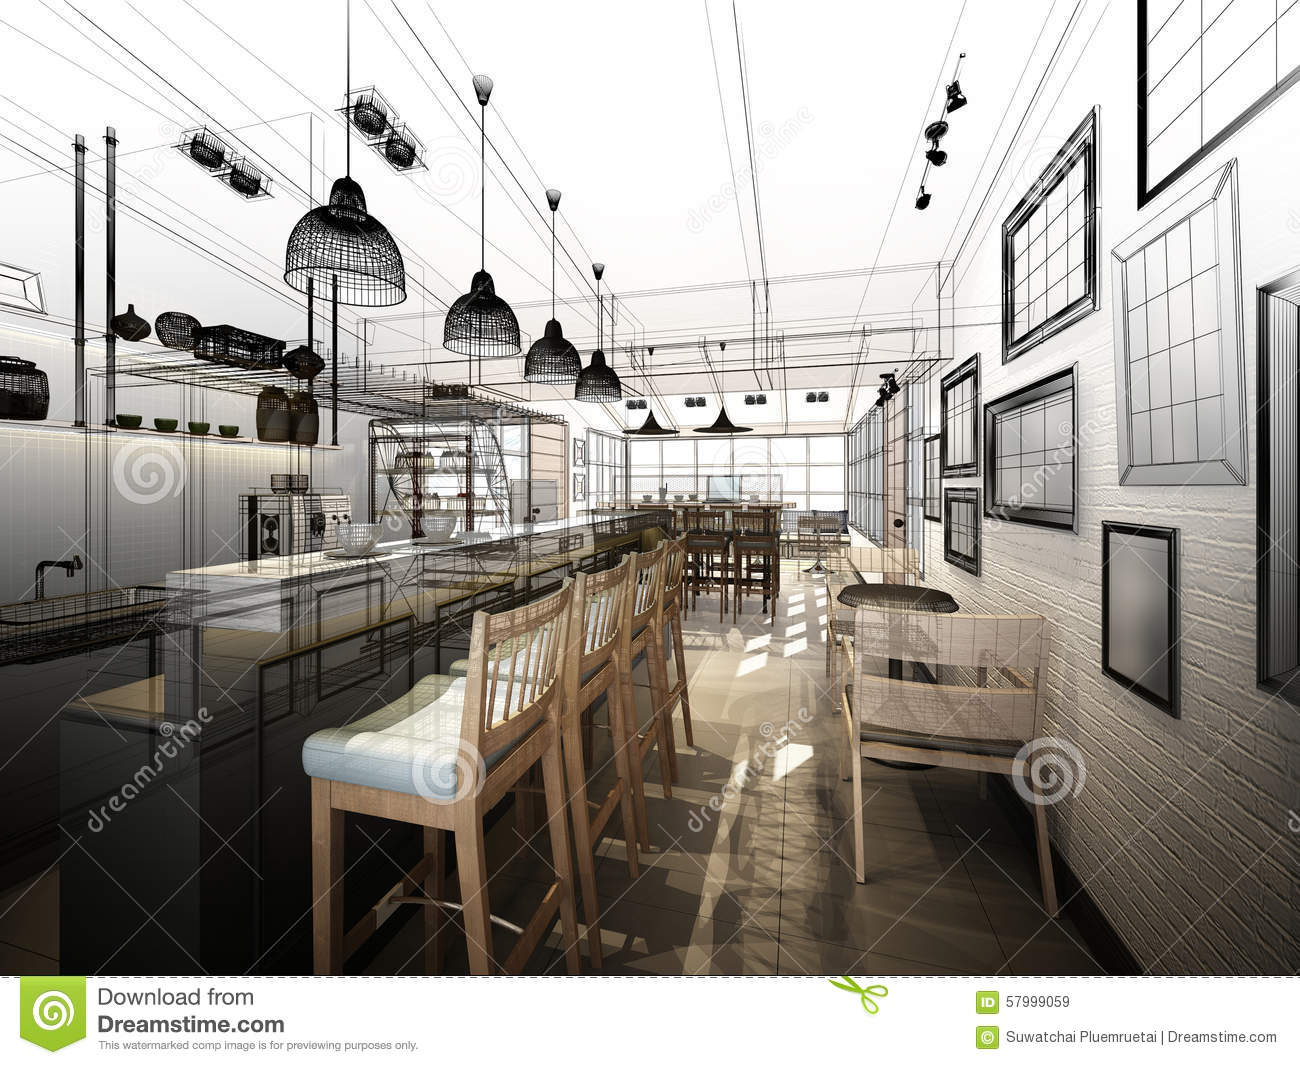 Sketch Design Of Coffee Shop Stock Illustration - Illustration Of Concept Plan 57999059